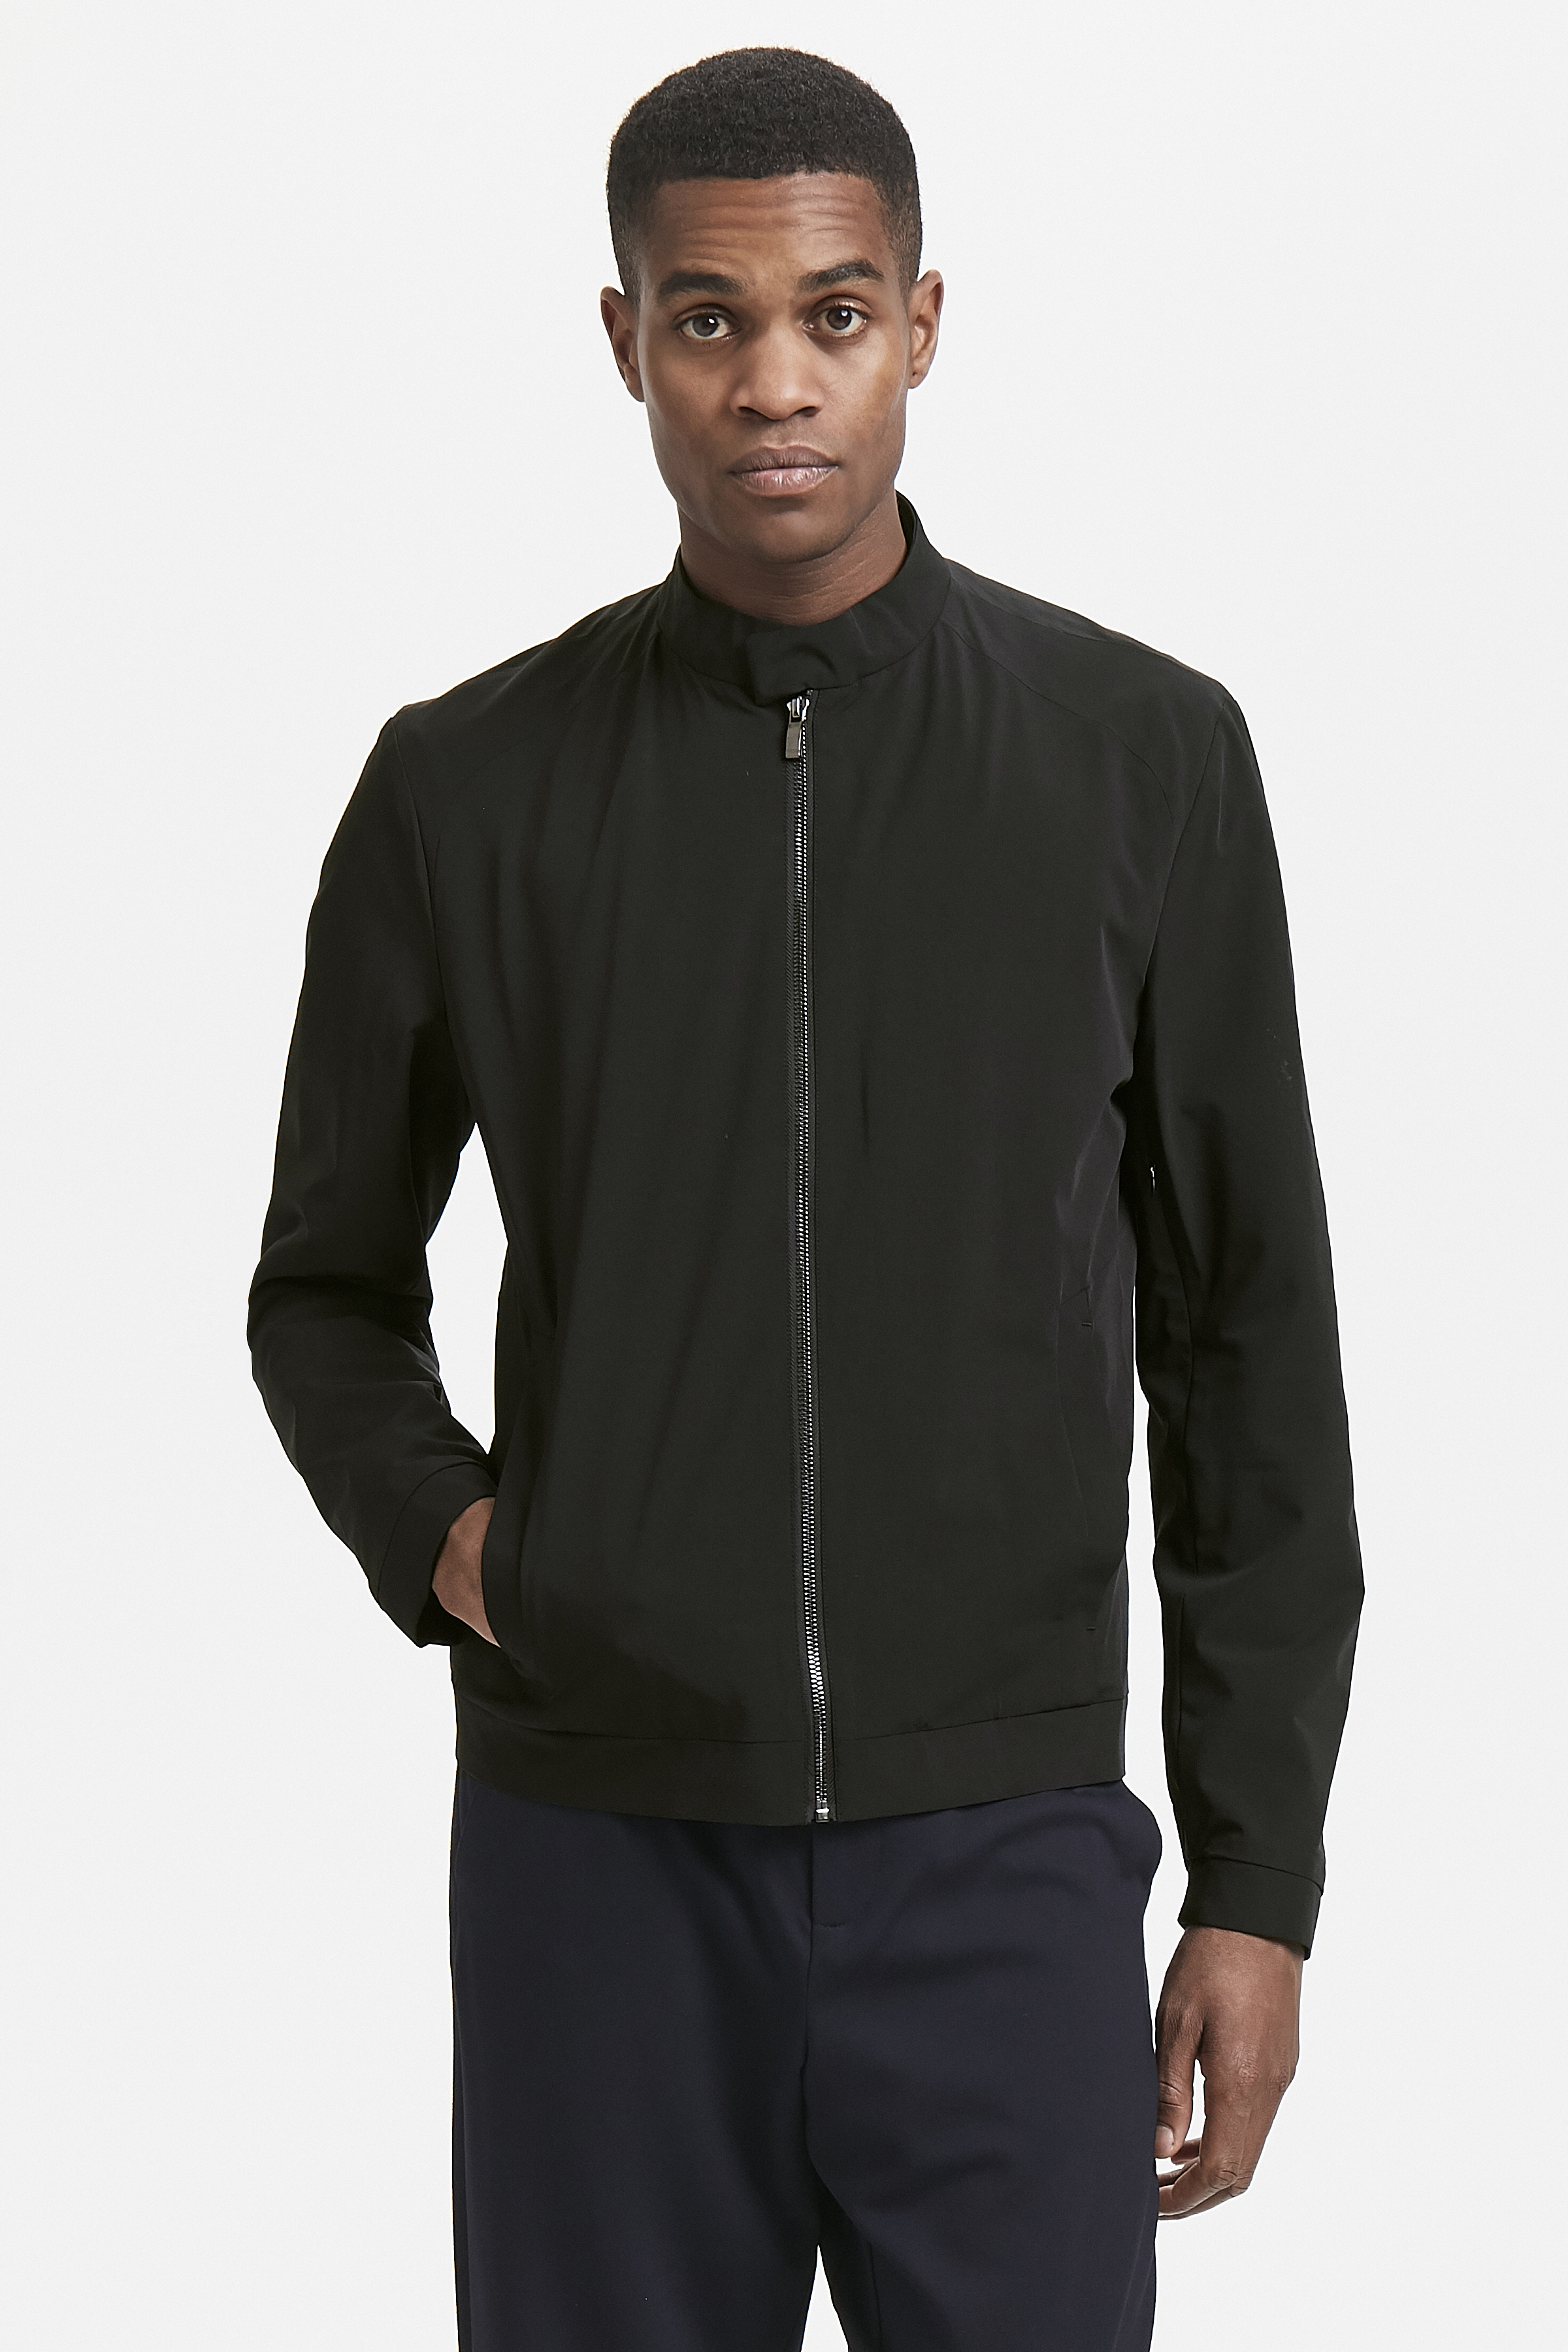 Black Polon Jacket – Køb Black Polon Jacket fra str. S-XXL her